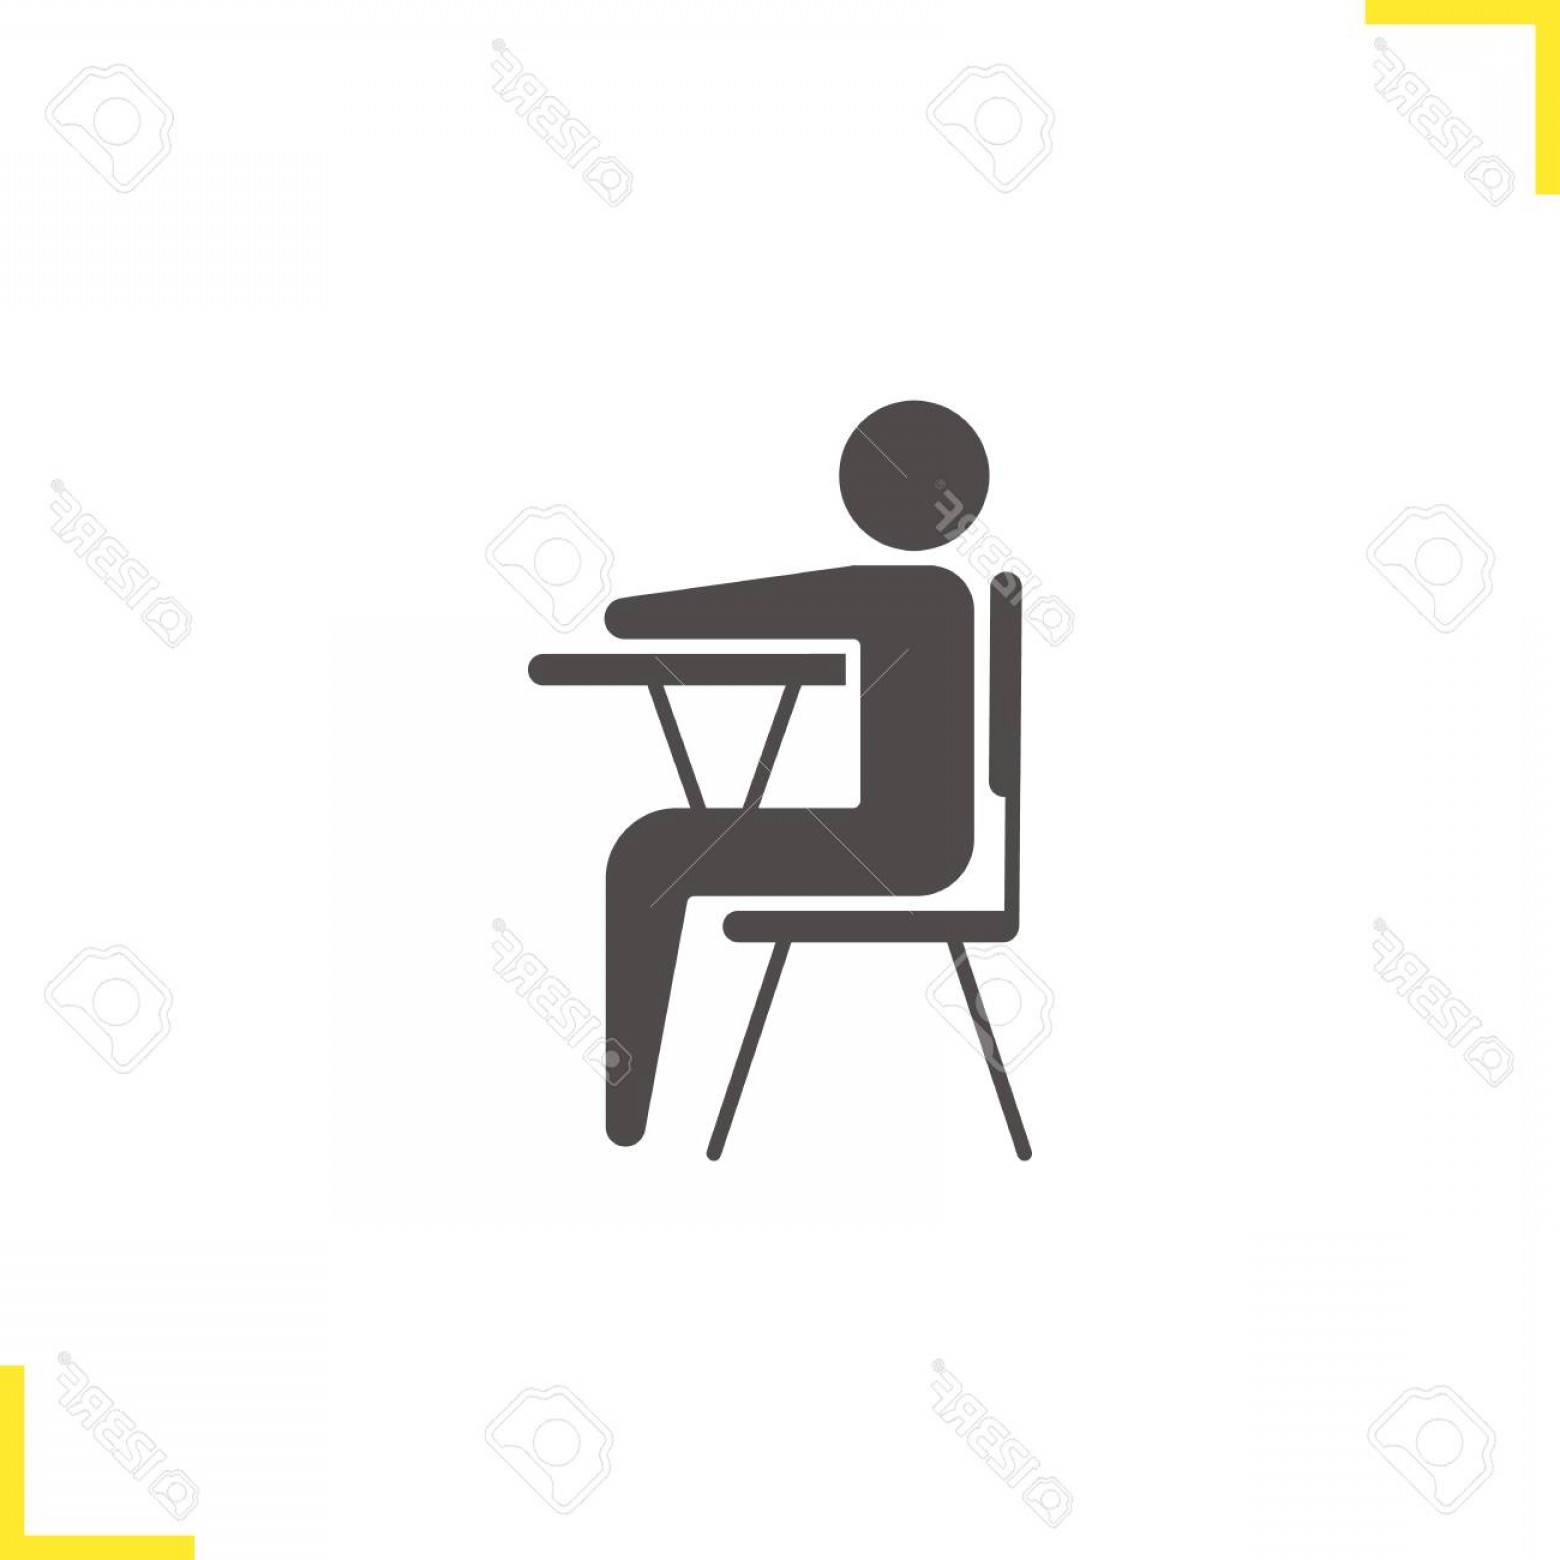 Student Desk Icon Vector: Photostock Vector Pupil Glyph Icon Silhouette Symbol School Student Sitting At Desk Negative Space Vector Isolated Ill